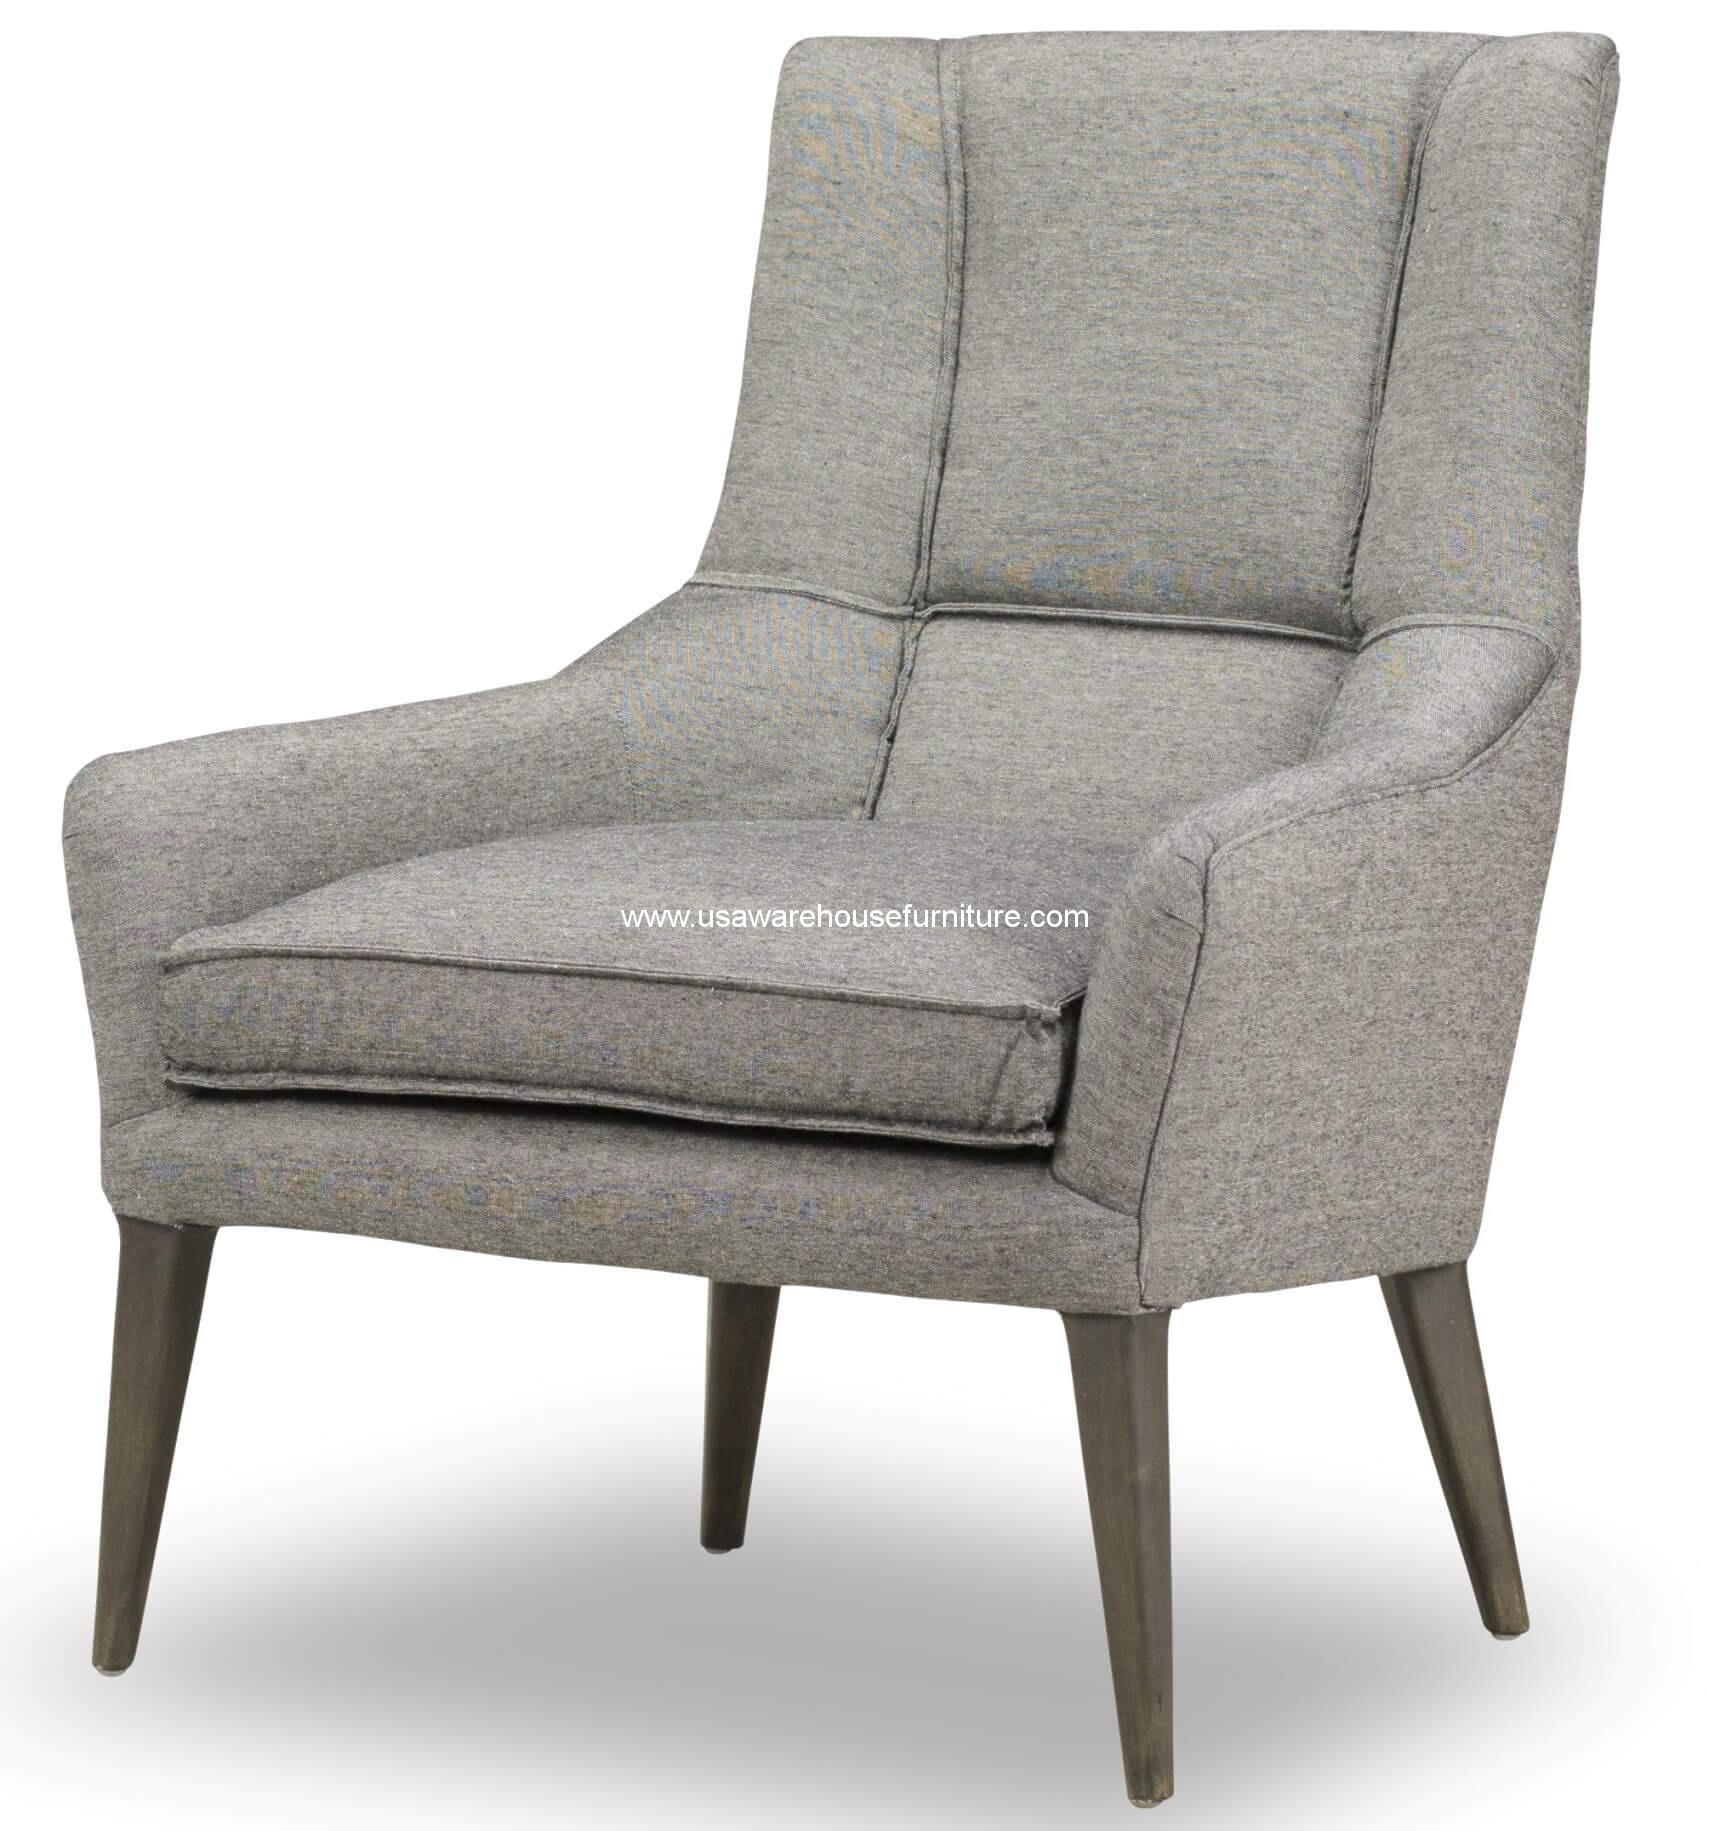 Peach Colored Accent Chair: Peach Salon Chair Marlin Silver WC-F-SE12020-10